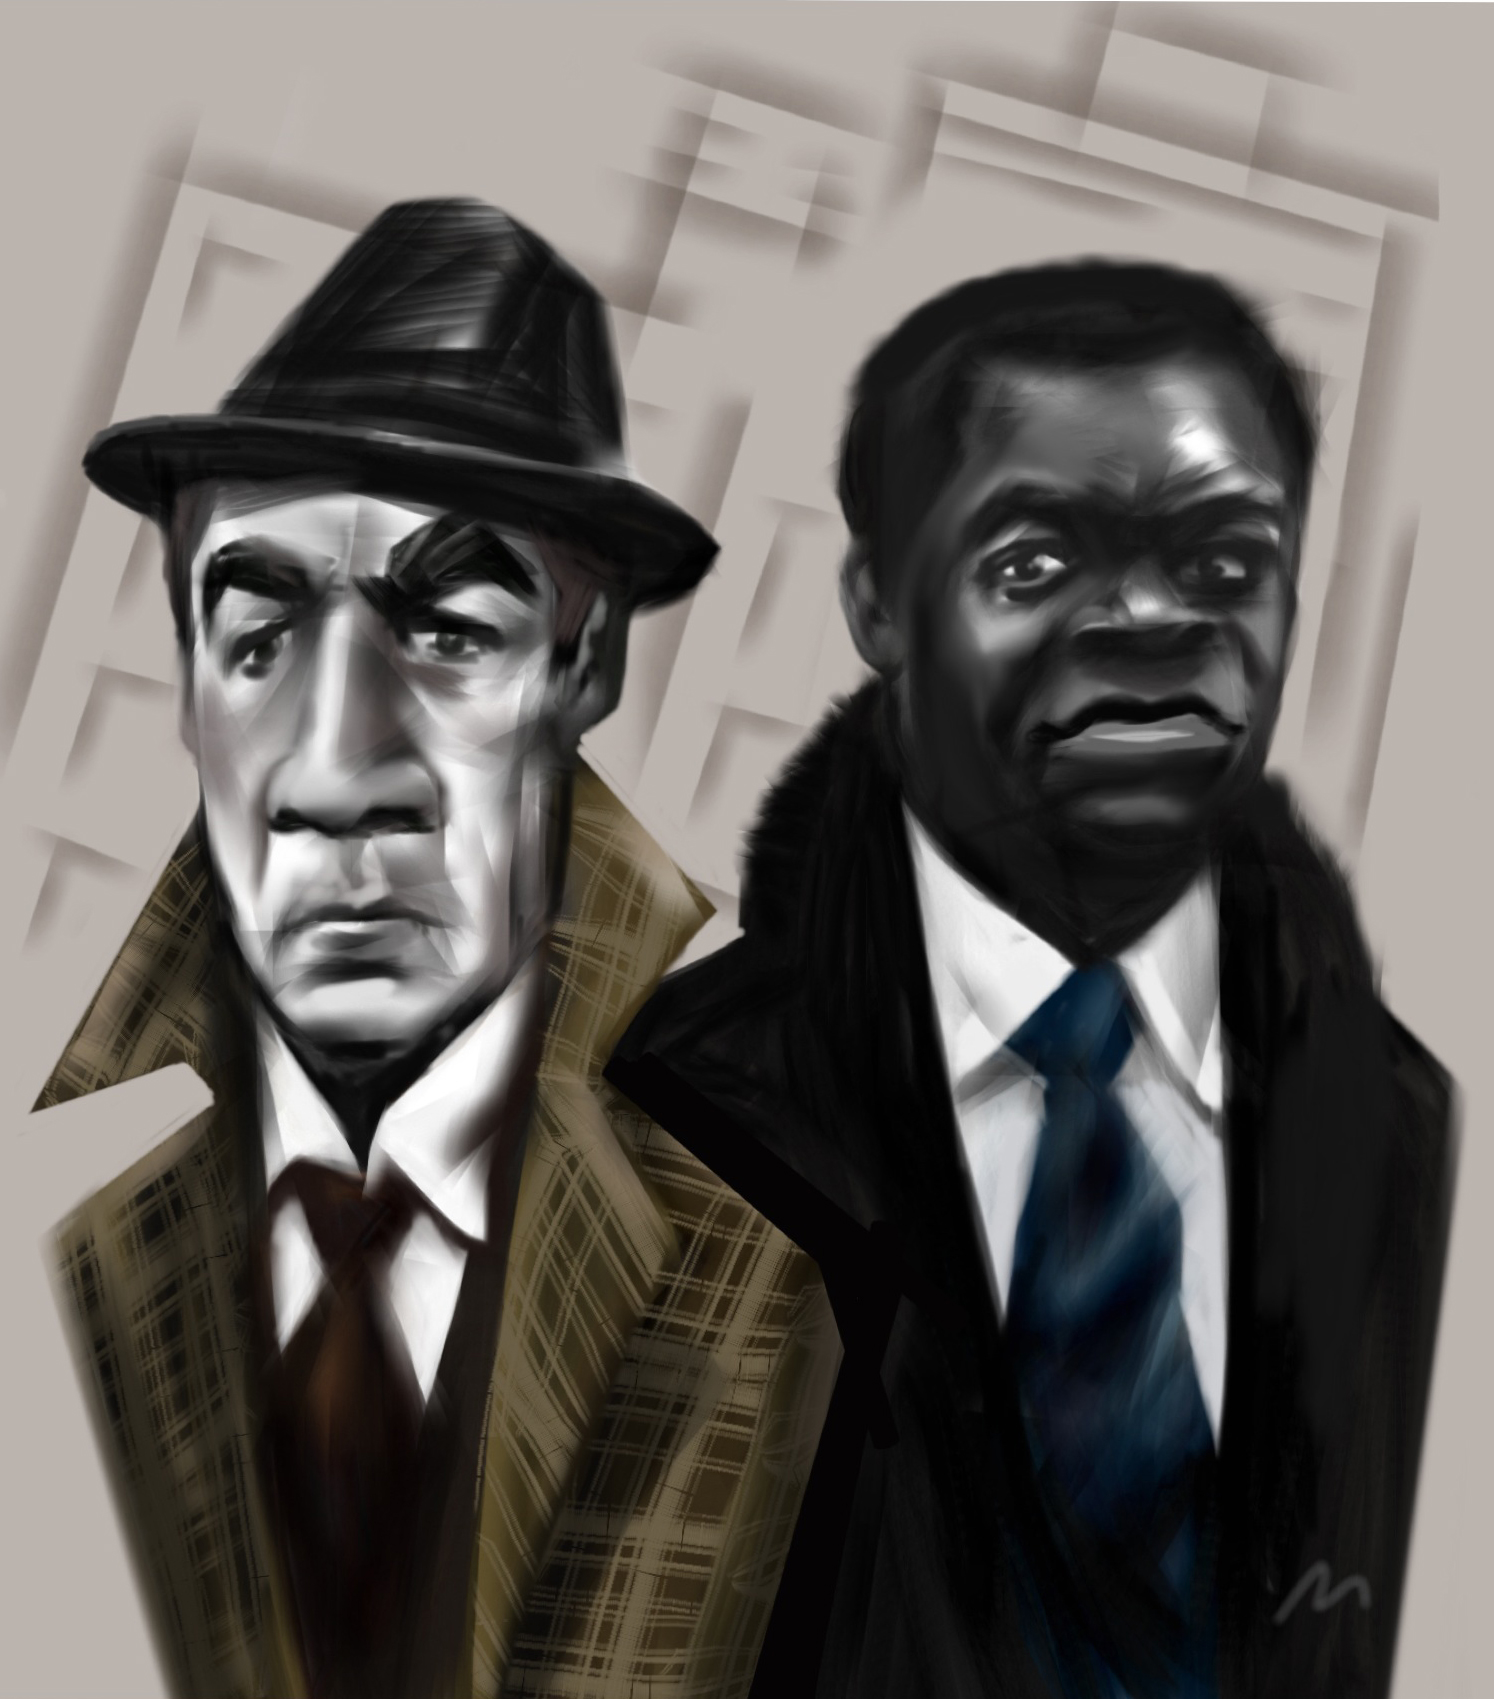 """Anthony Quinn & Yaphet Kotto, """"Across 110th Street""""   Two New York City cops go after amateur crooks who are trying to rip off the Mafia and start a gang war. With a great soundtrack and live smokey nightclub performance by Curtis Mayfield. Damn!"""